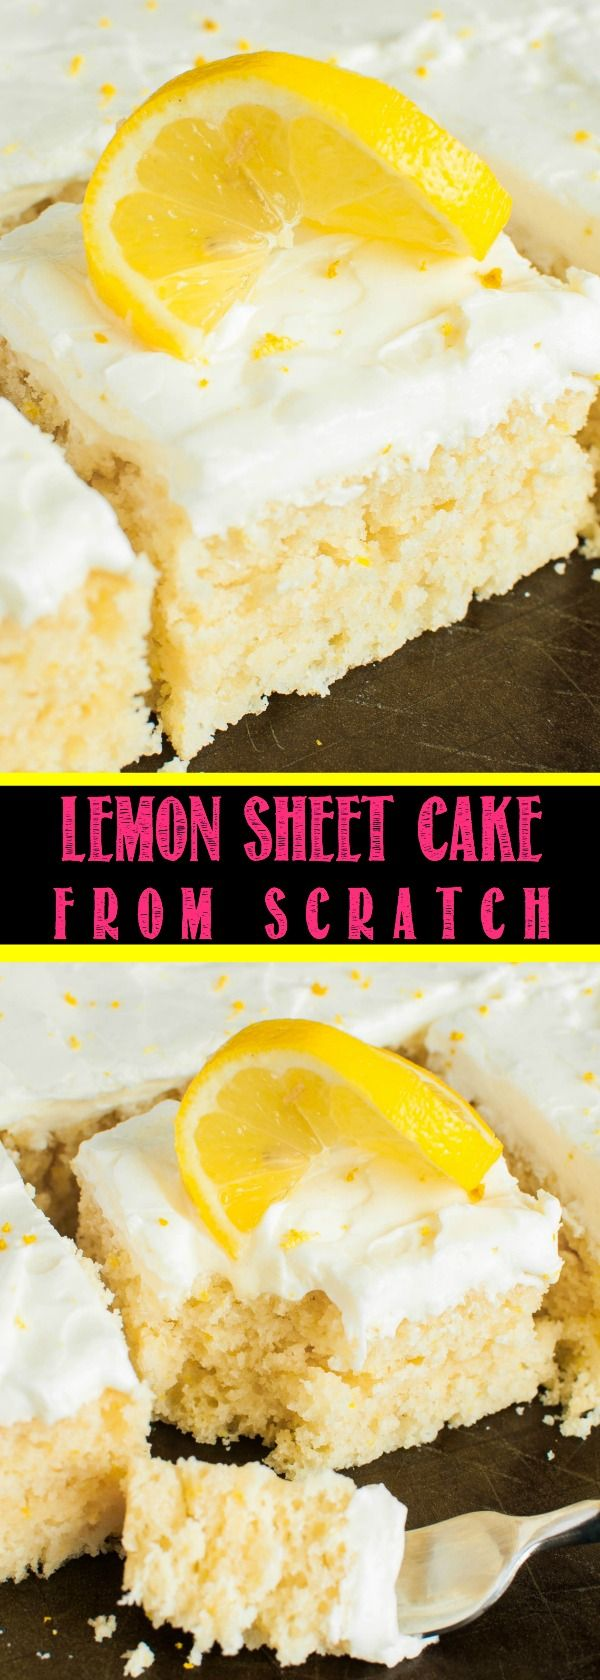 This easy Lemon Sheet Cake with Lemon Cream Cheese Frosting is made from scratch and better than a box mix! You will LOVE this moist, vibrant lemon dessert!